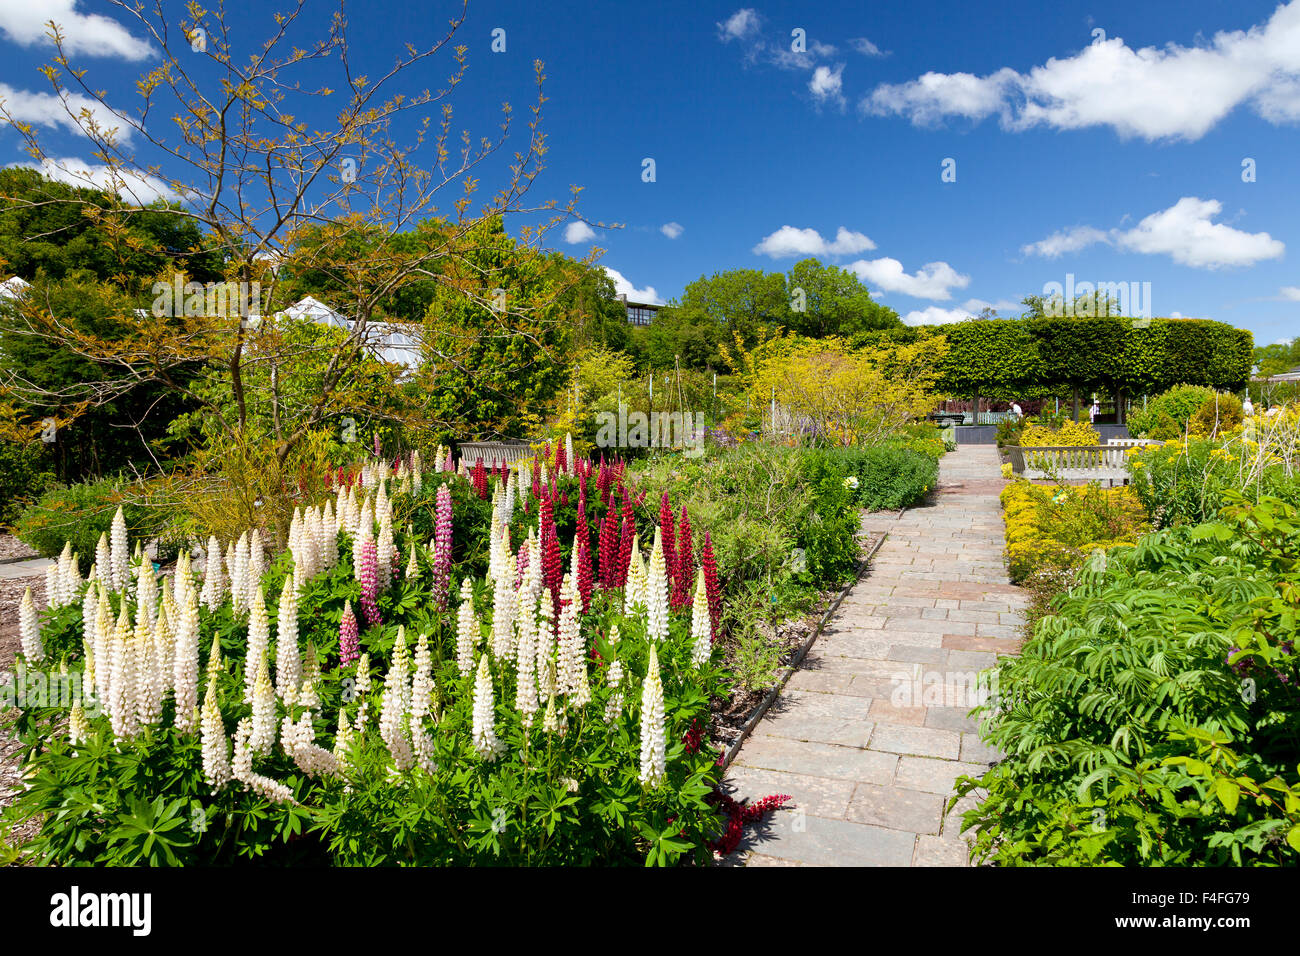 Colourful lupins in the double walled garden at the National Botanical Gardens of Wales, Carmarthenshire, Wales, - Stock Image